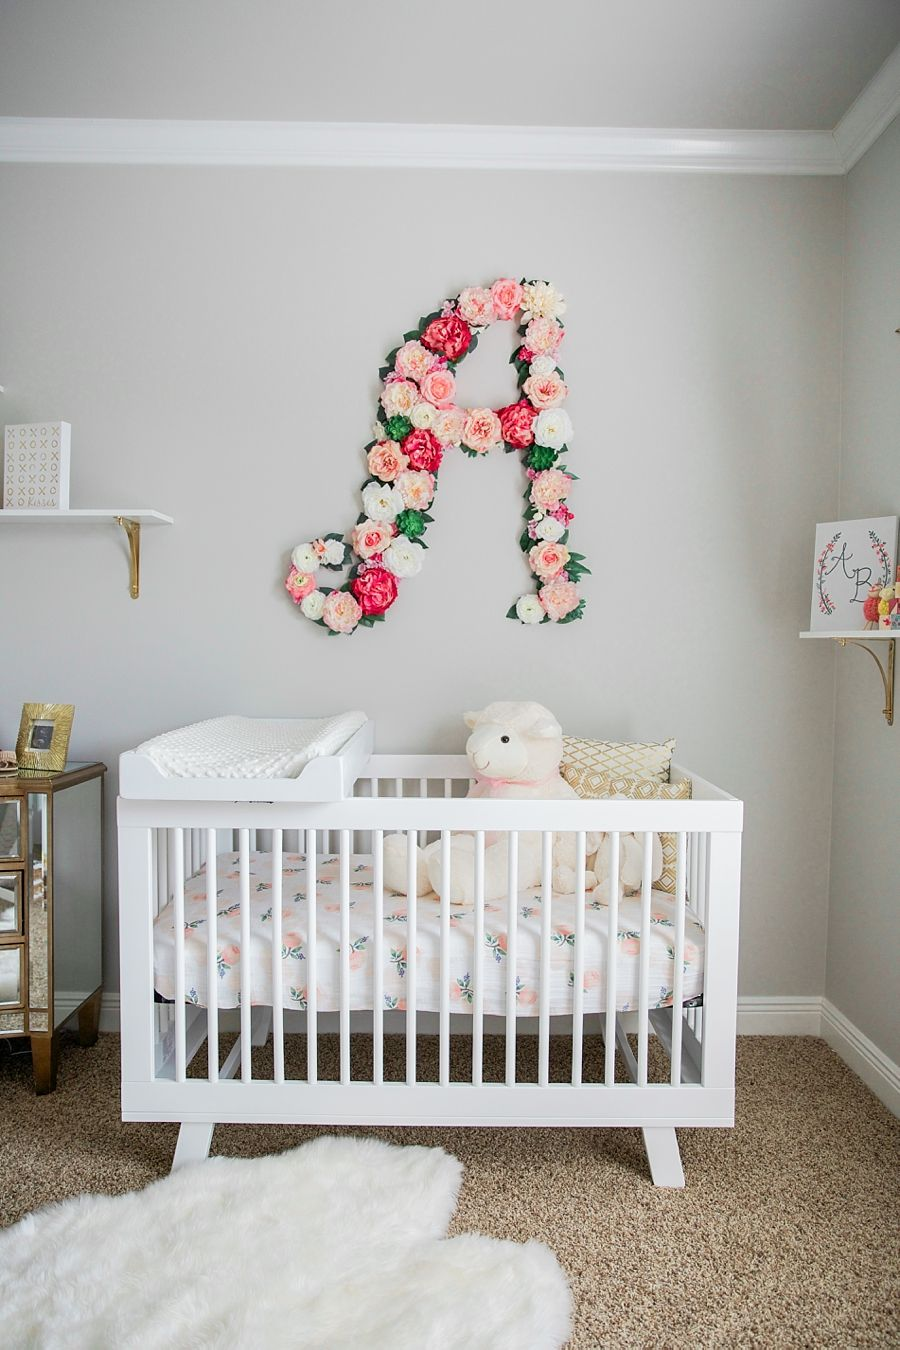 Baby Girl Nursery Decor Baby girl nursery with floral wall | Shop. Rent. Consign.  MotherhoodCloset.com Maternity Consignment